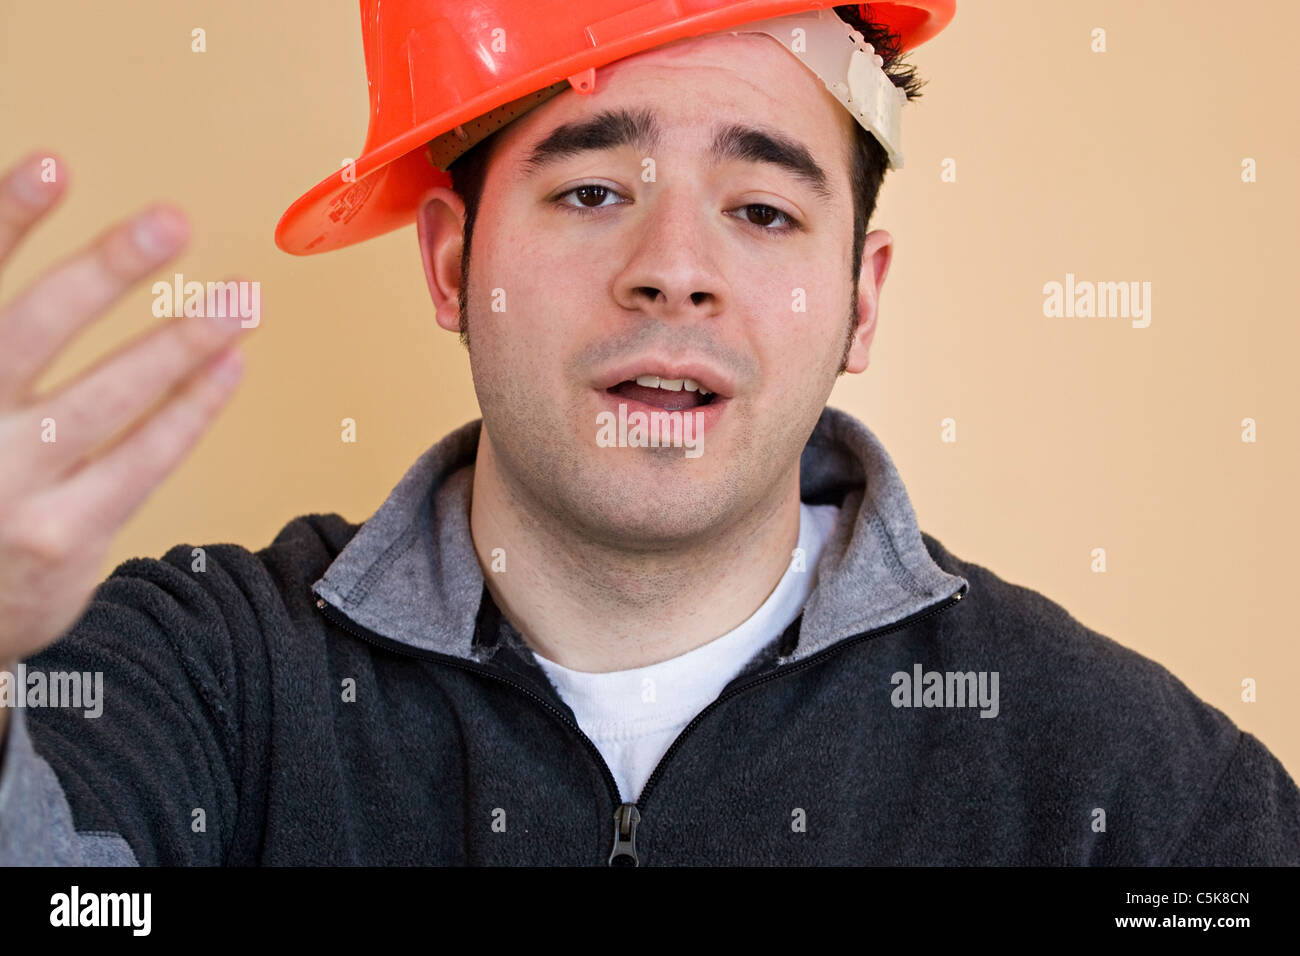 This young construction worker has his hard hat on sideways. - Stock Image